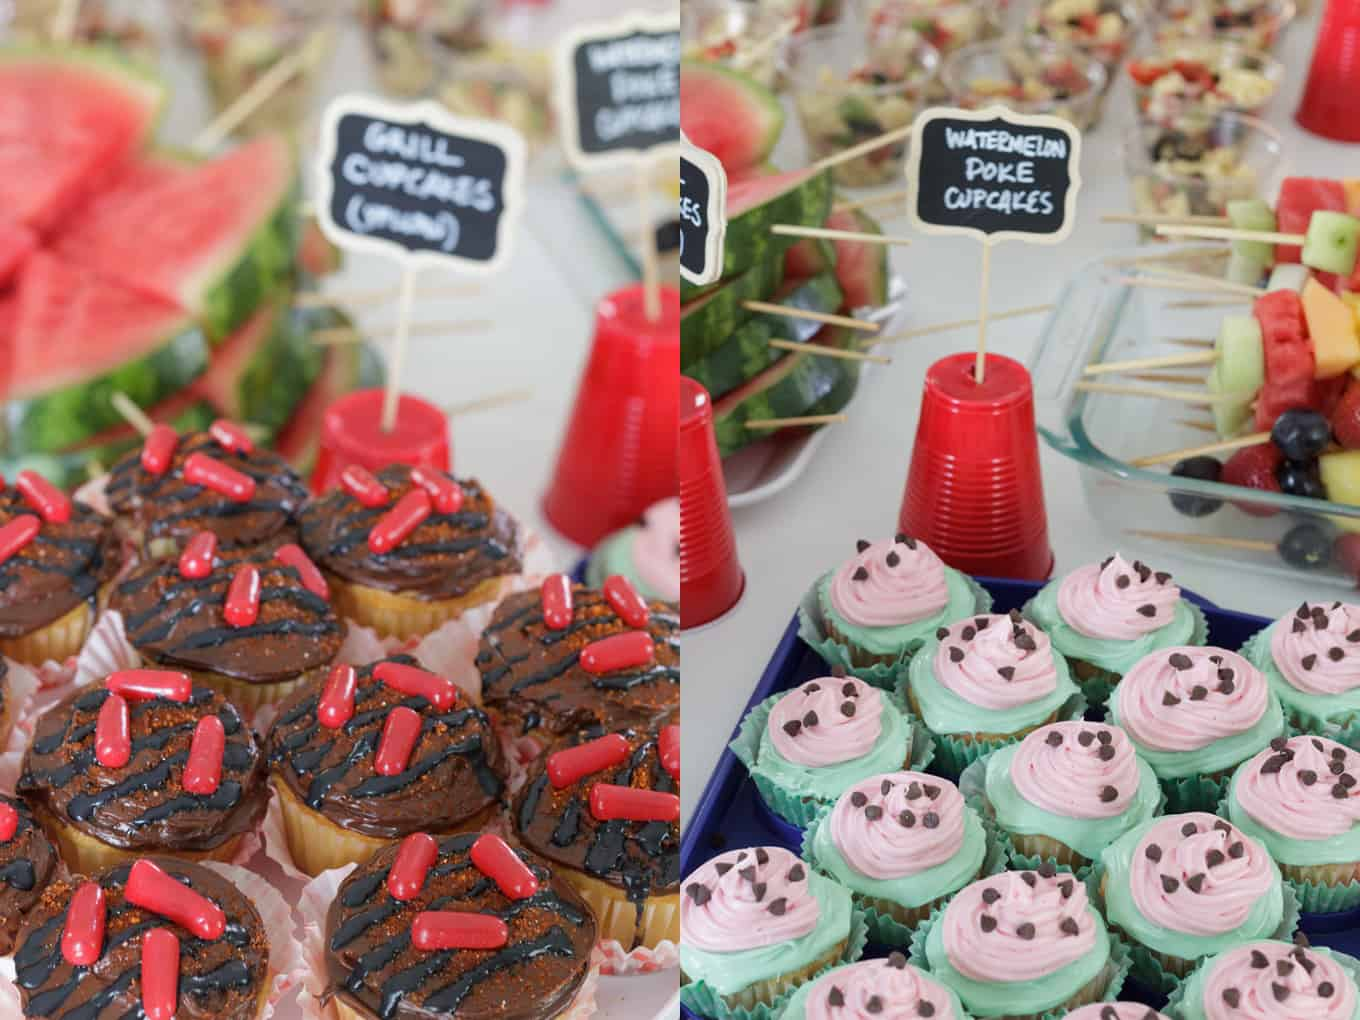 barbecue bridal shower watermelon cupcakes and grill cupcakes